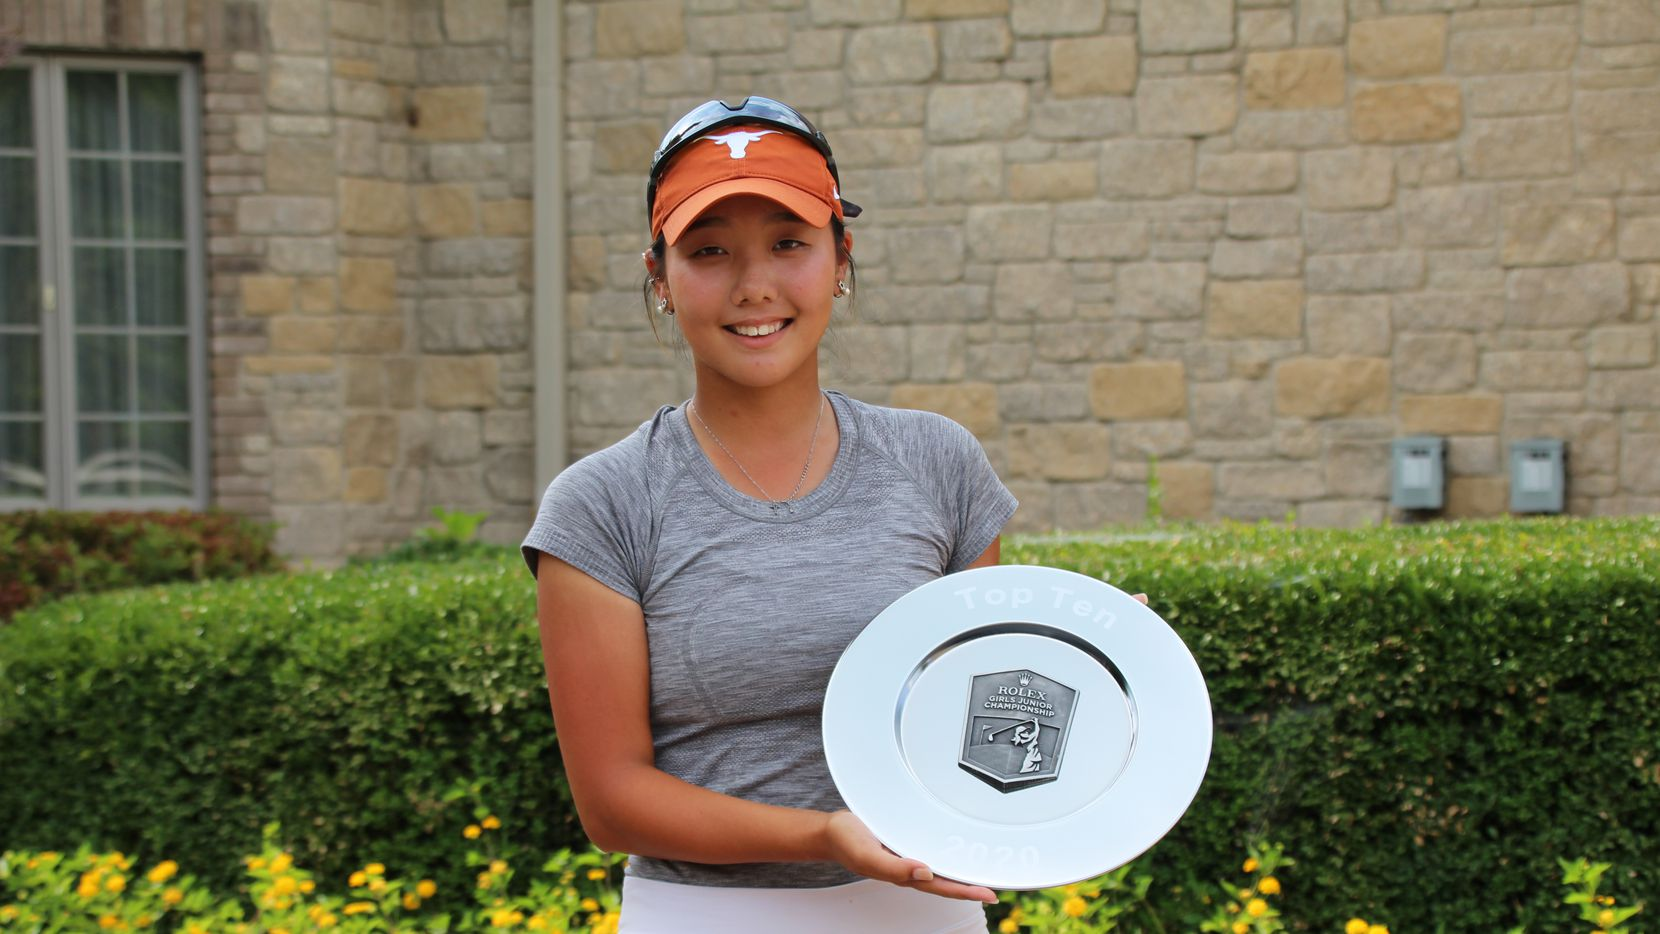 Bohyun Park of Farmers Branch was named first-team Rolex Junior All-Americans by the American Junior Golf Association on Oct. 28, 2020.